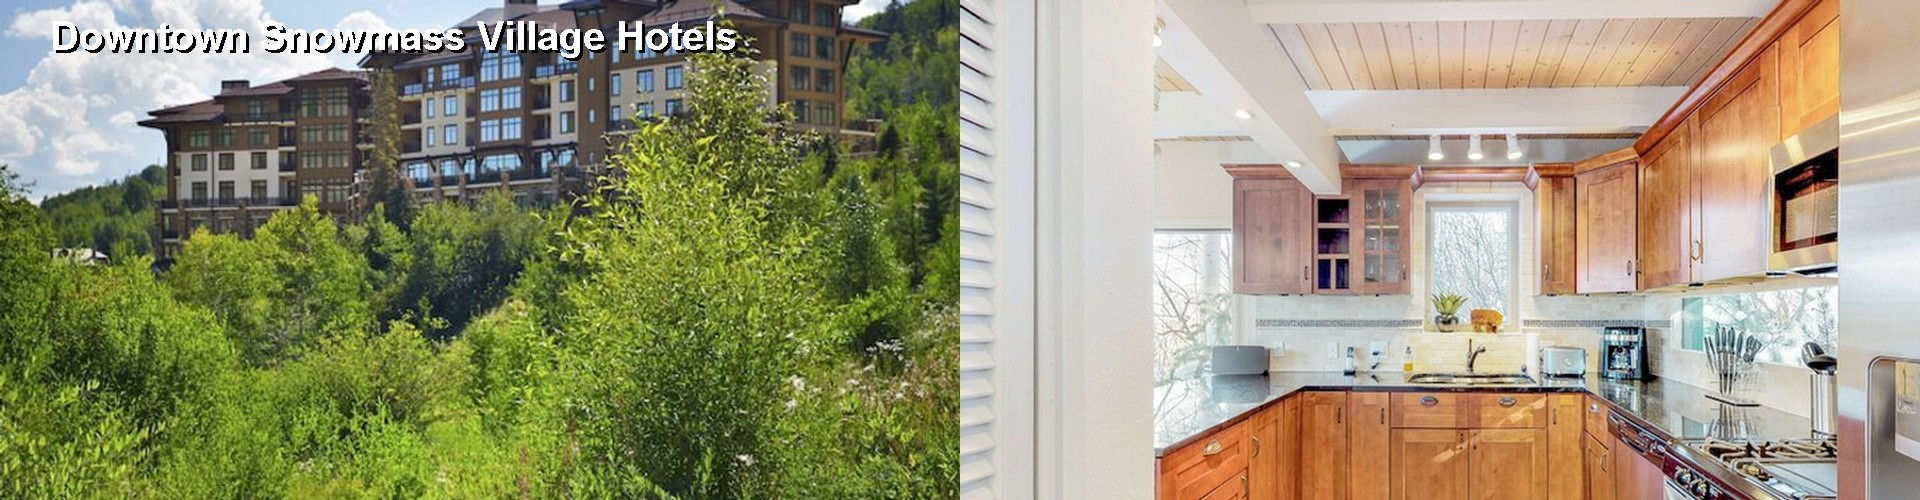 5 Best Hotels near Downtown Snowmass Village